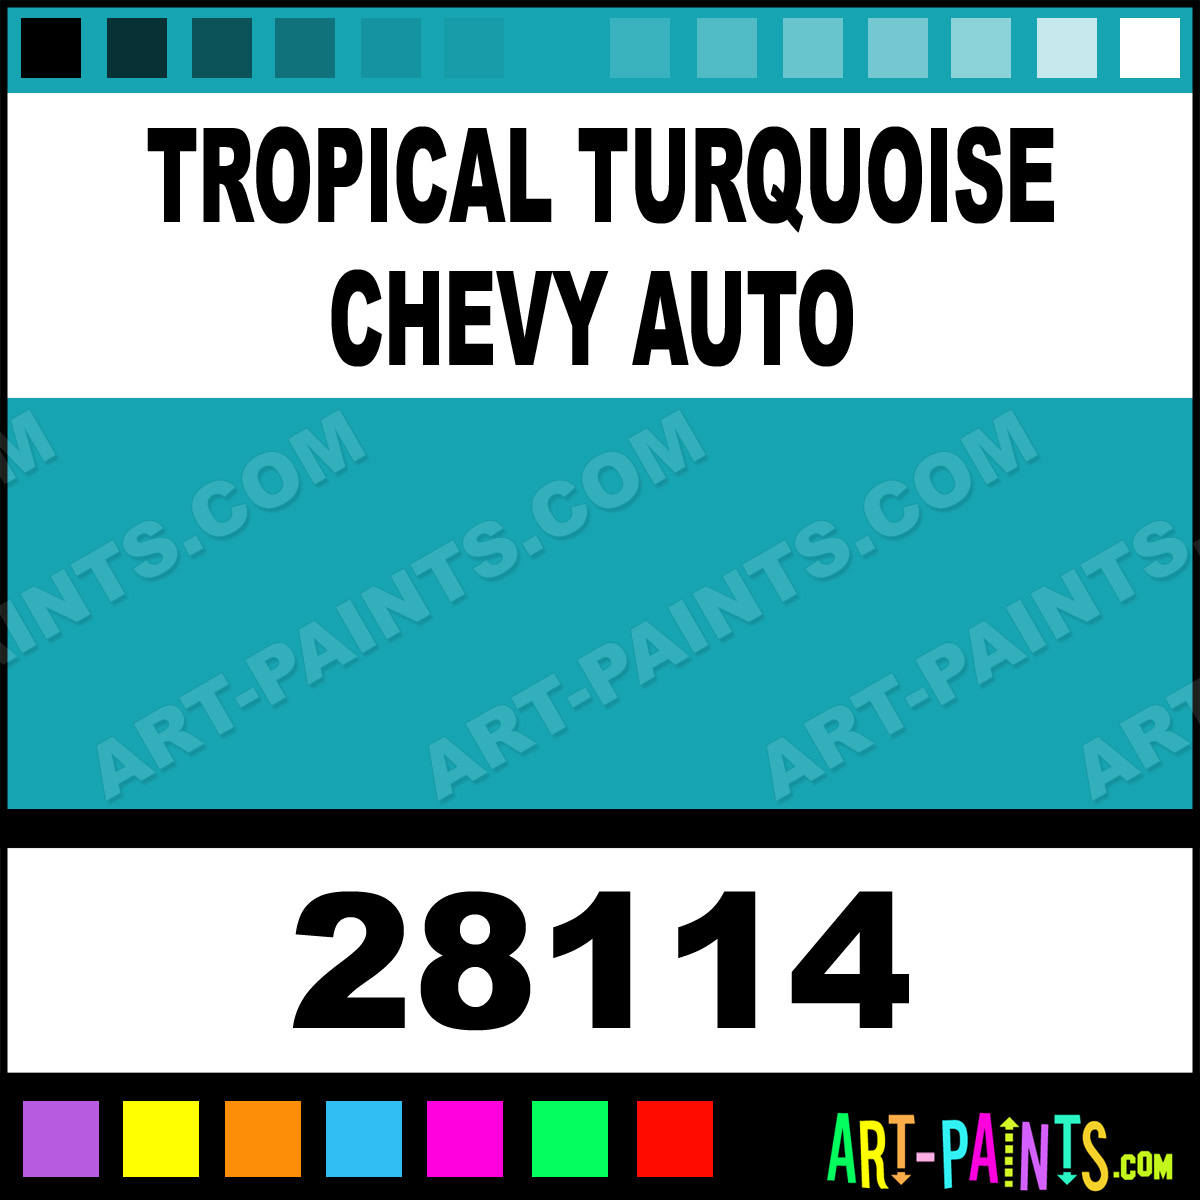 Chevy Tropical Turquoise Paint Code